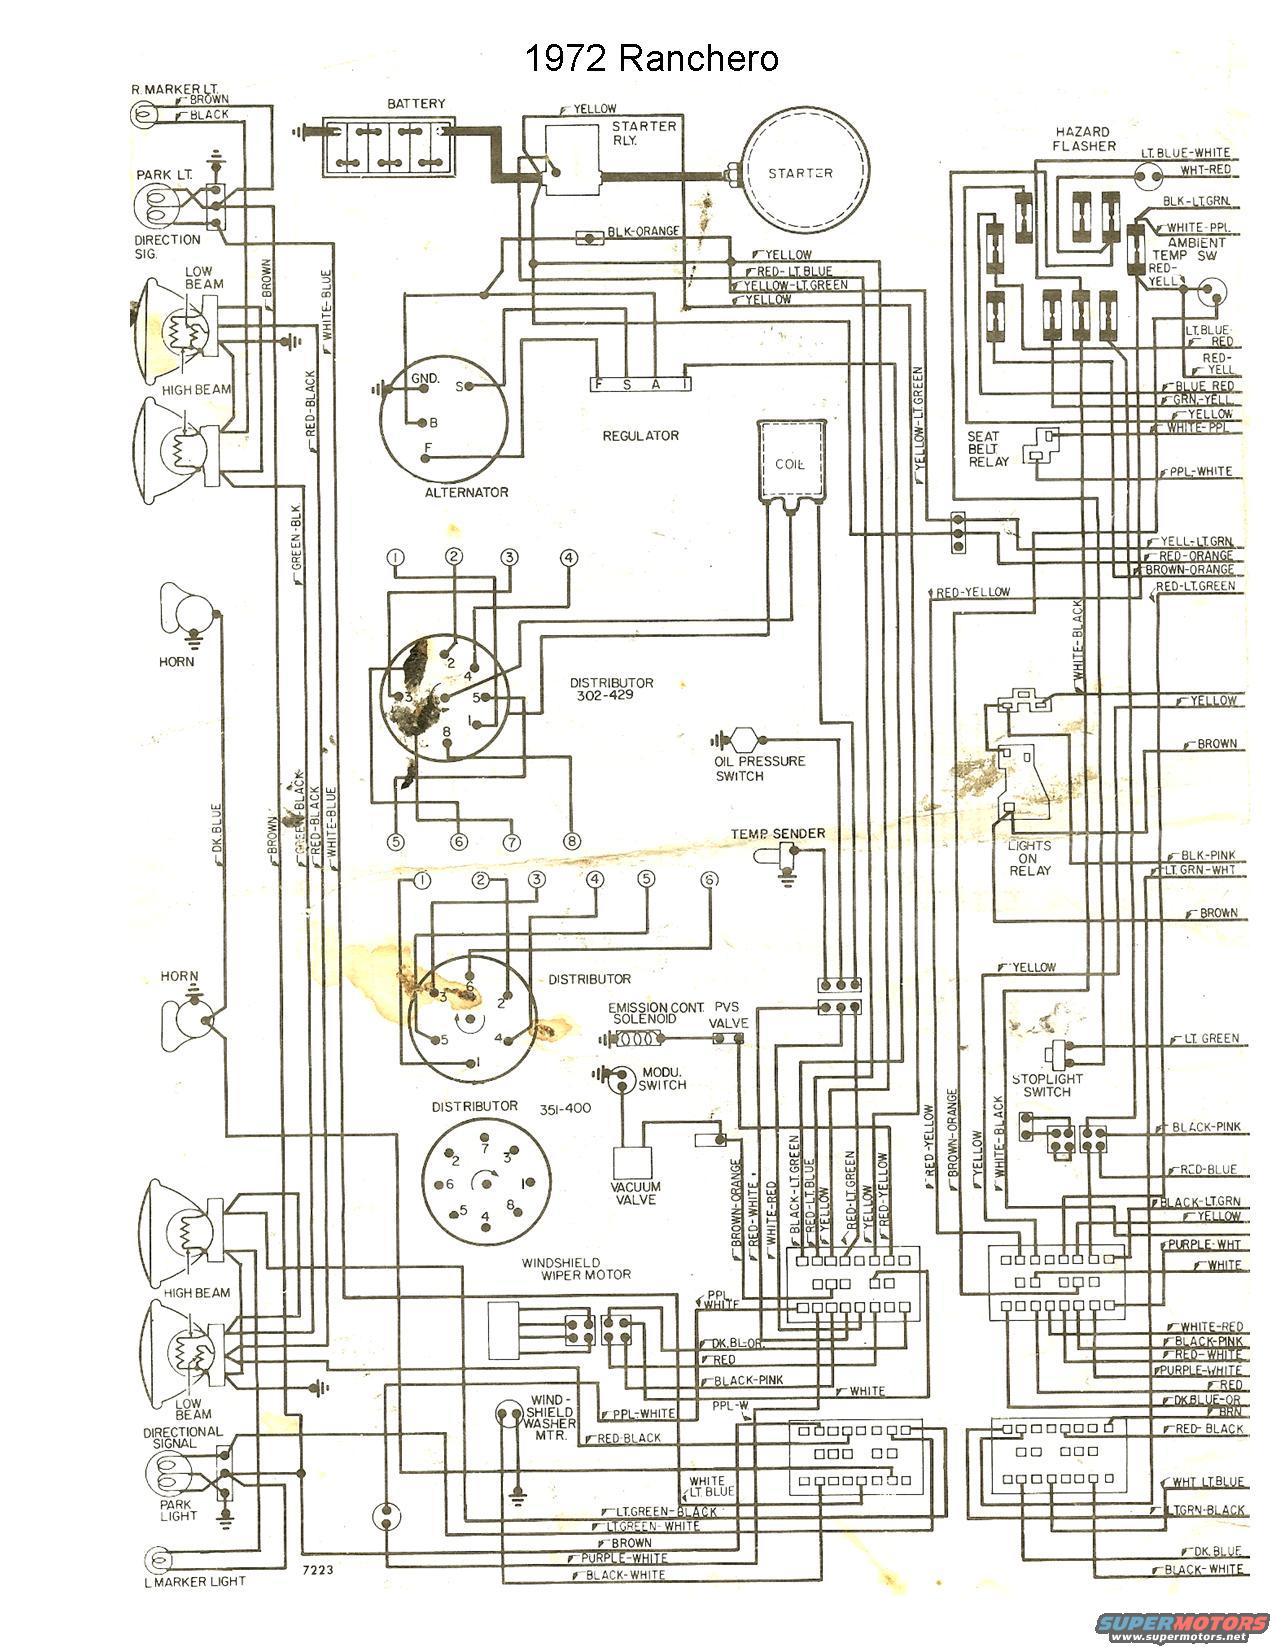 wiper switch diagram 72 ranchero wiring diagram rh blaknwyt co 1971 Torino 1966 Torino